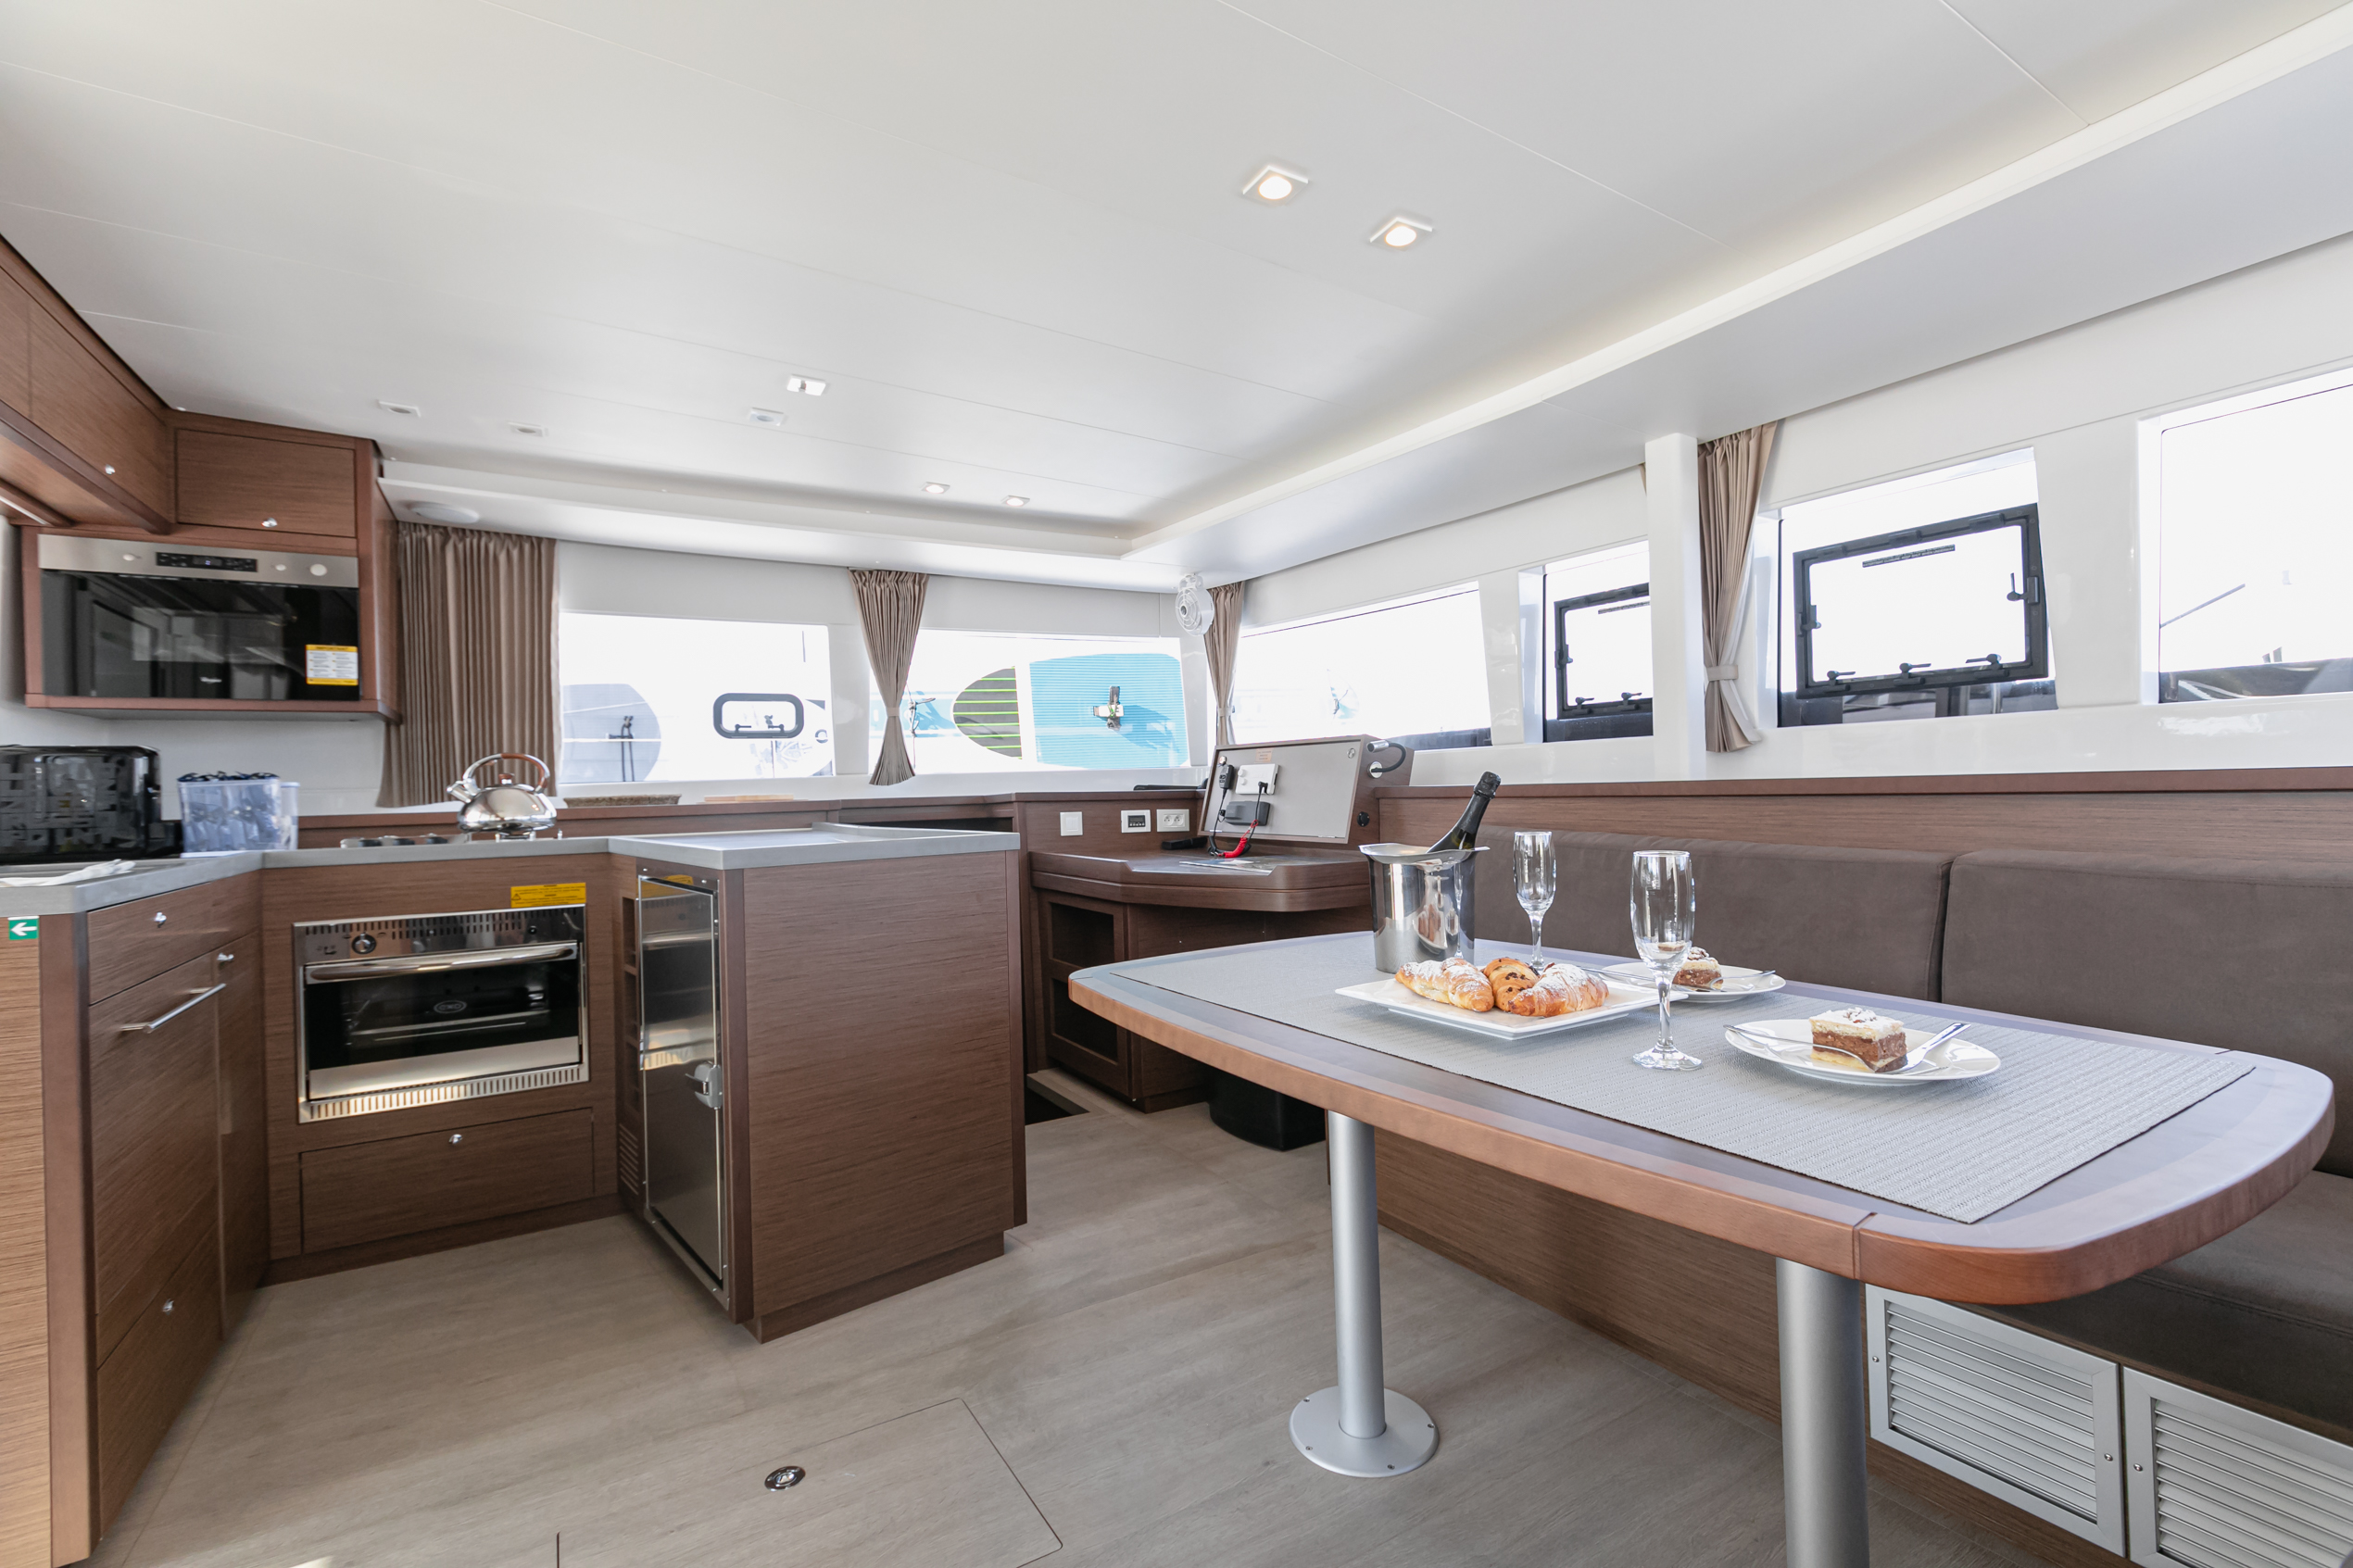 Lagoon 450 F (2019) equipped with generator, A/C ( (WIDE DREAM)  - 7